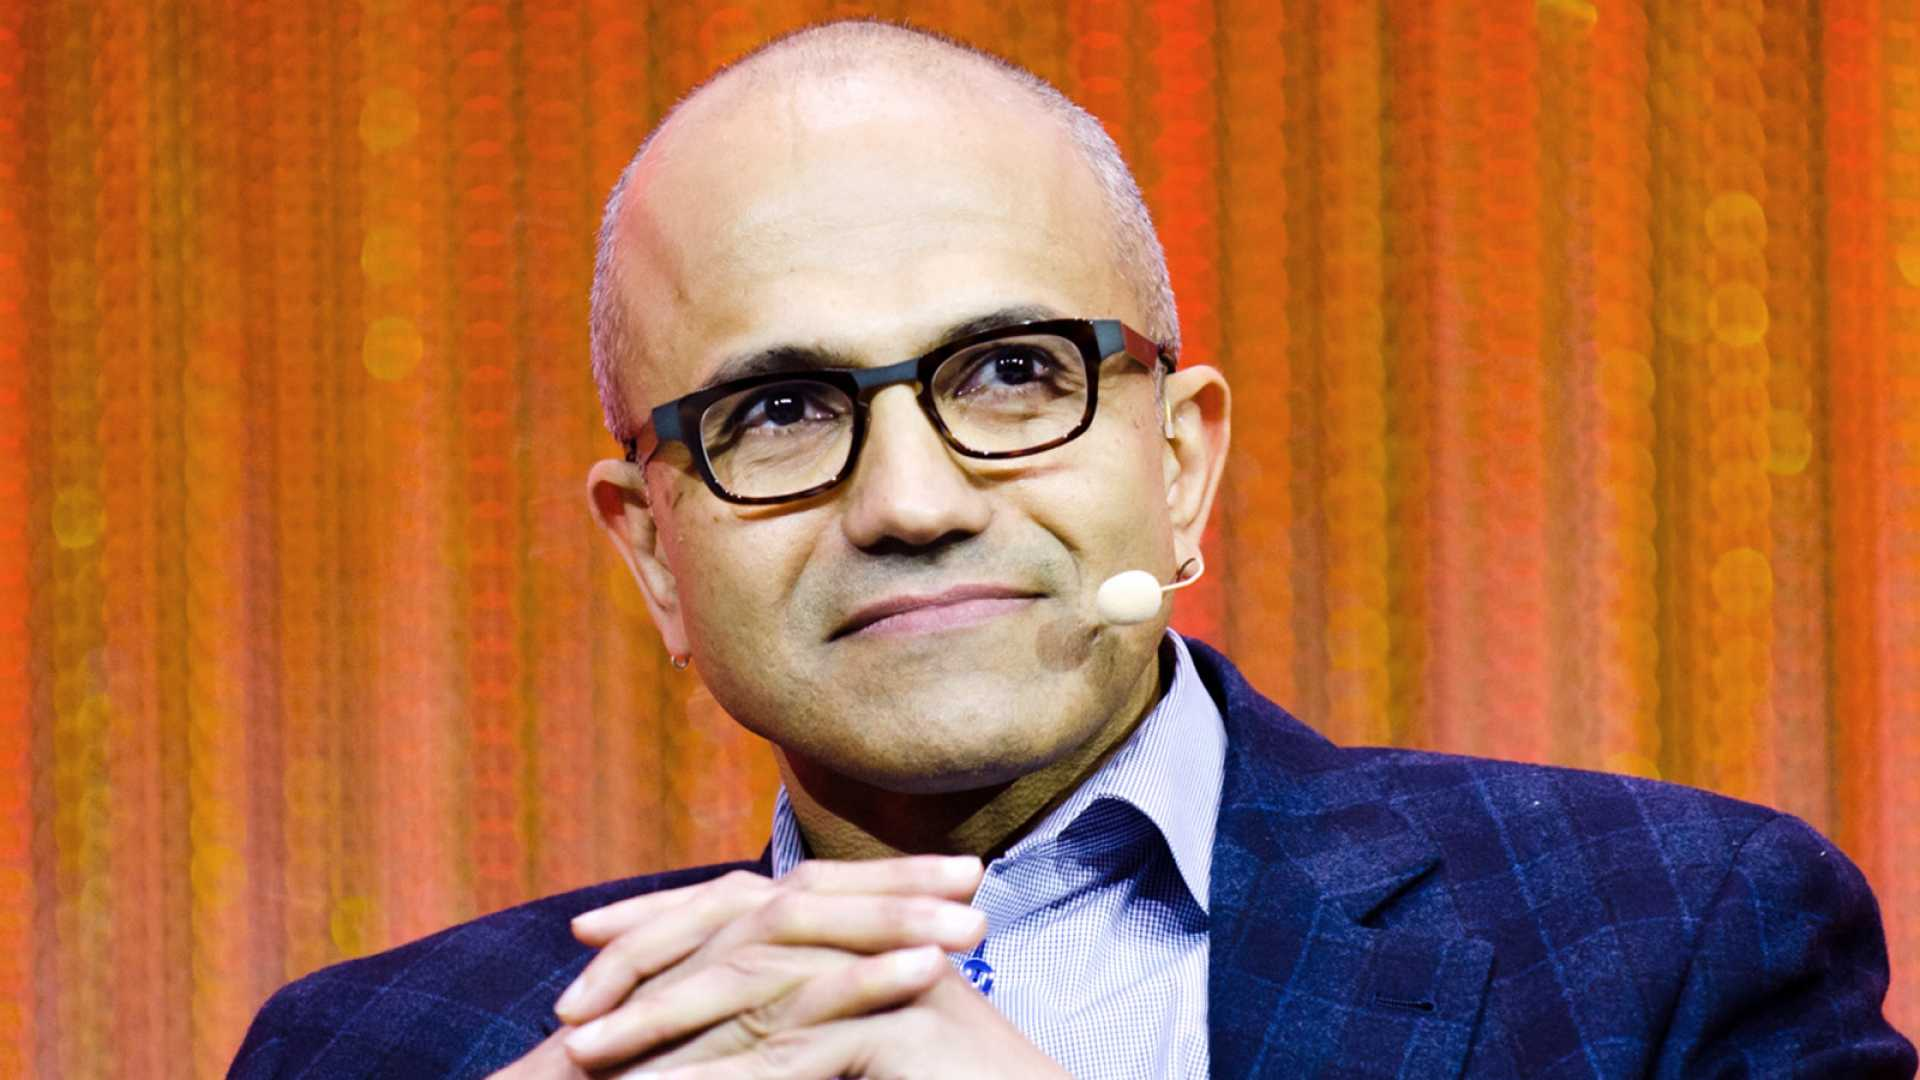 There's Hope for Microsoft, and His Name Is Satya Nadella